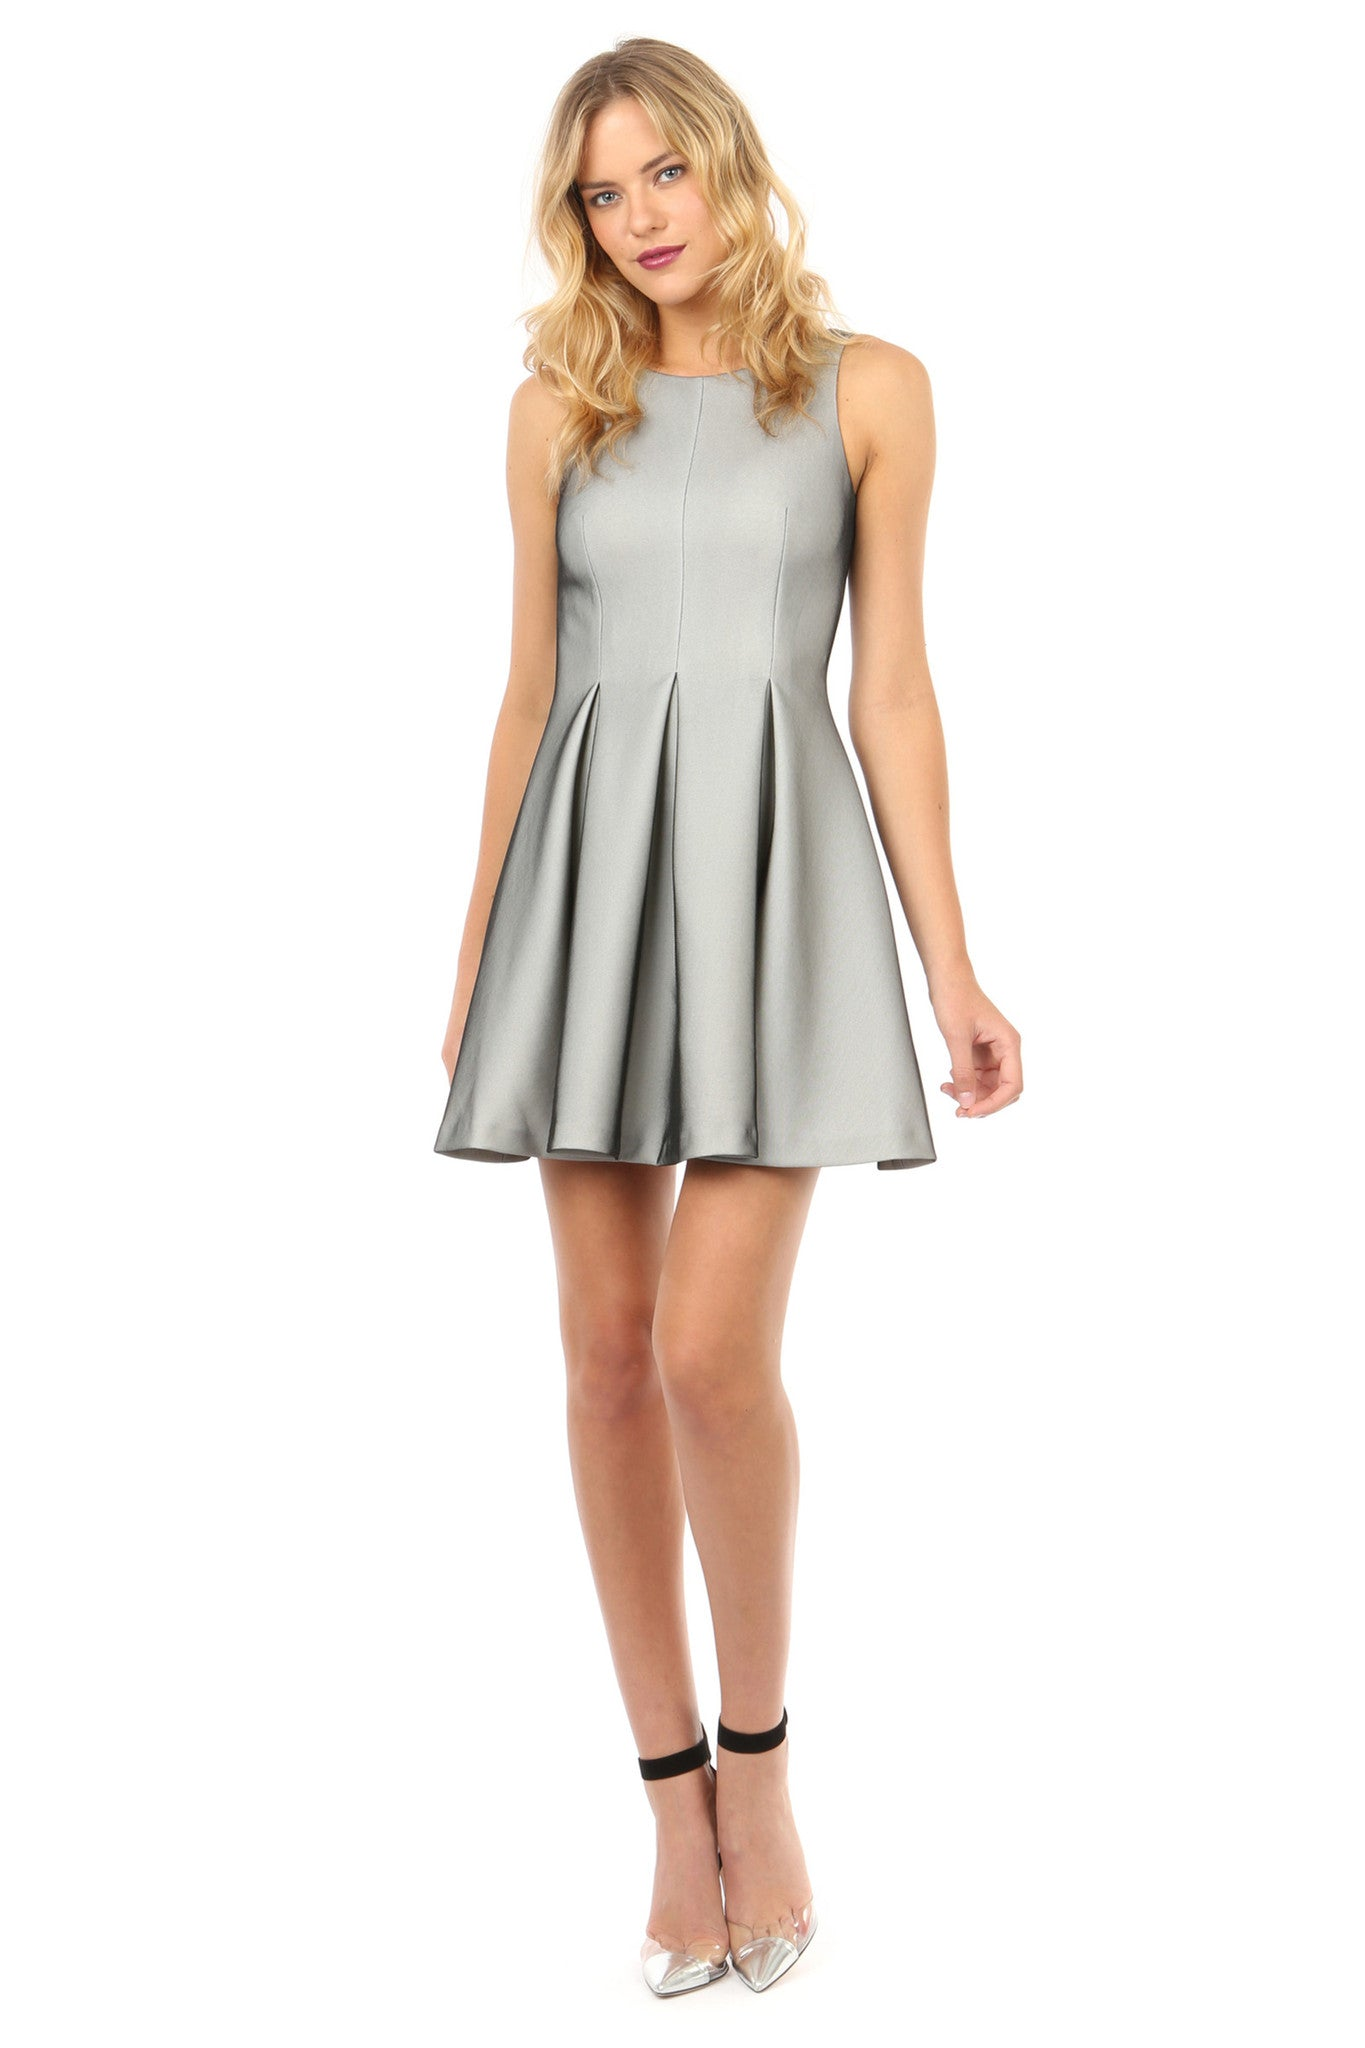 Jay Godfrey Silver  Fit and Flare Dress - Front View